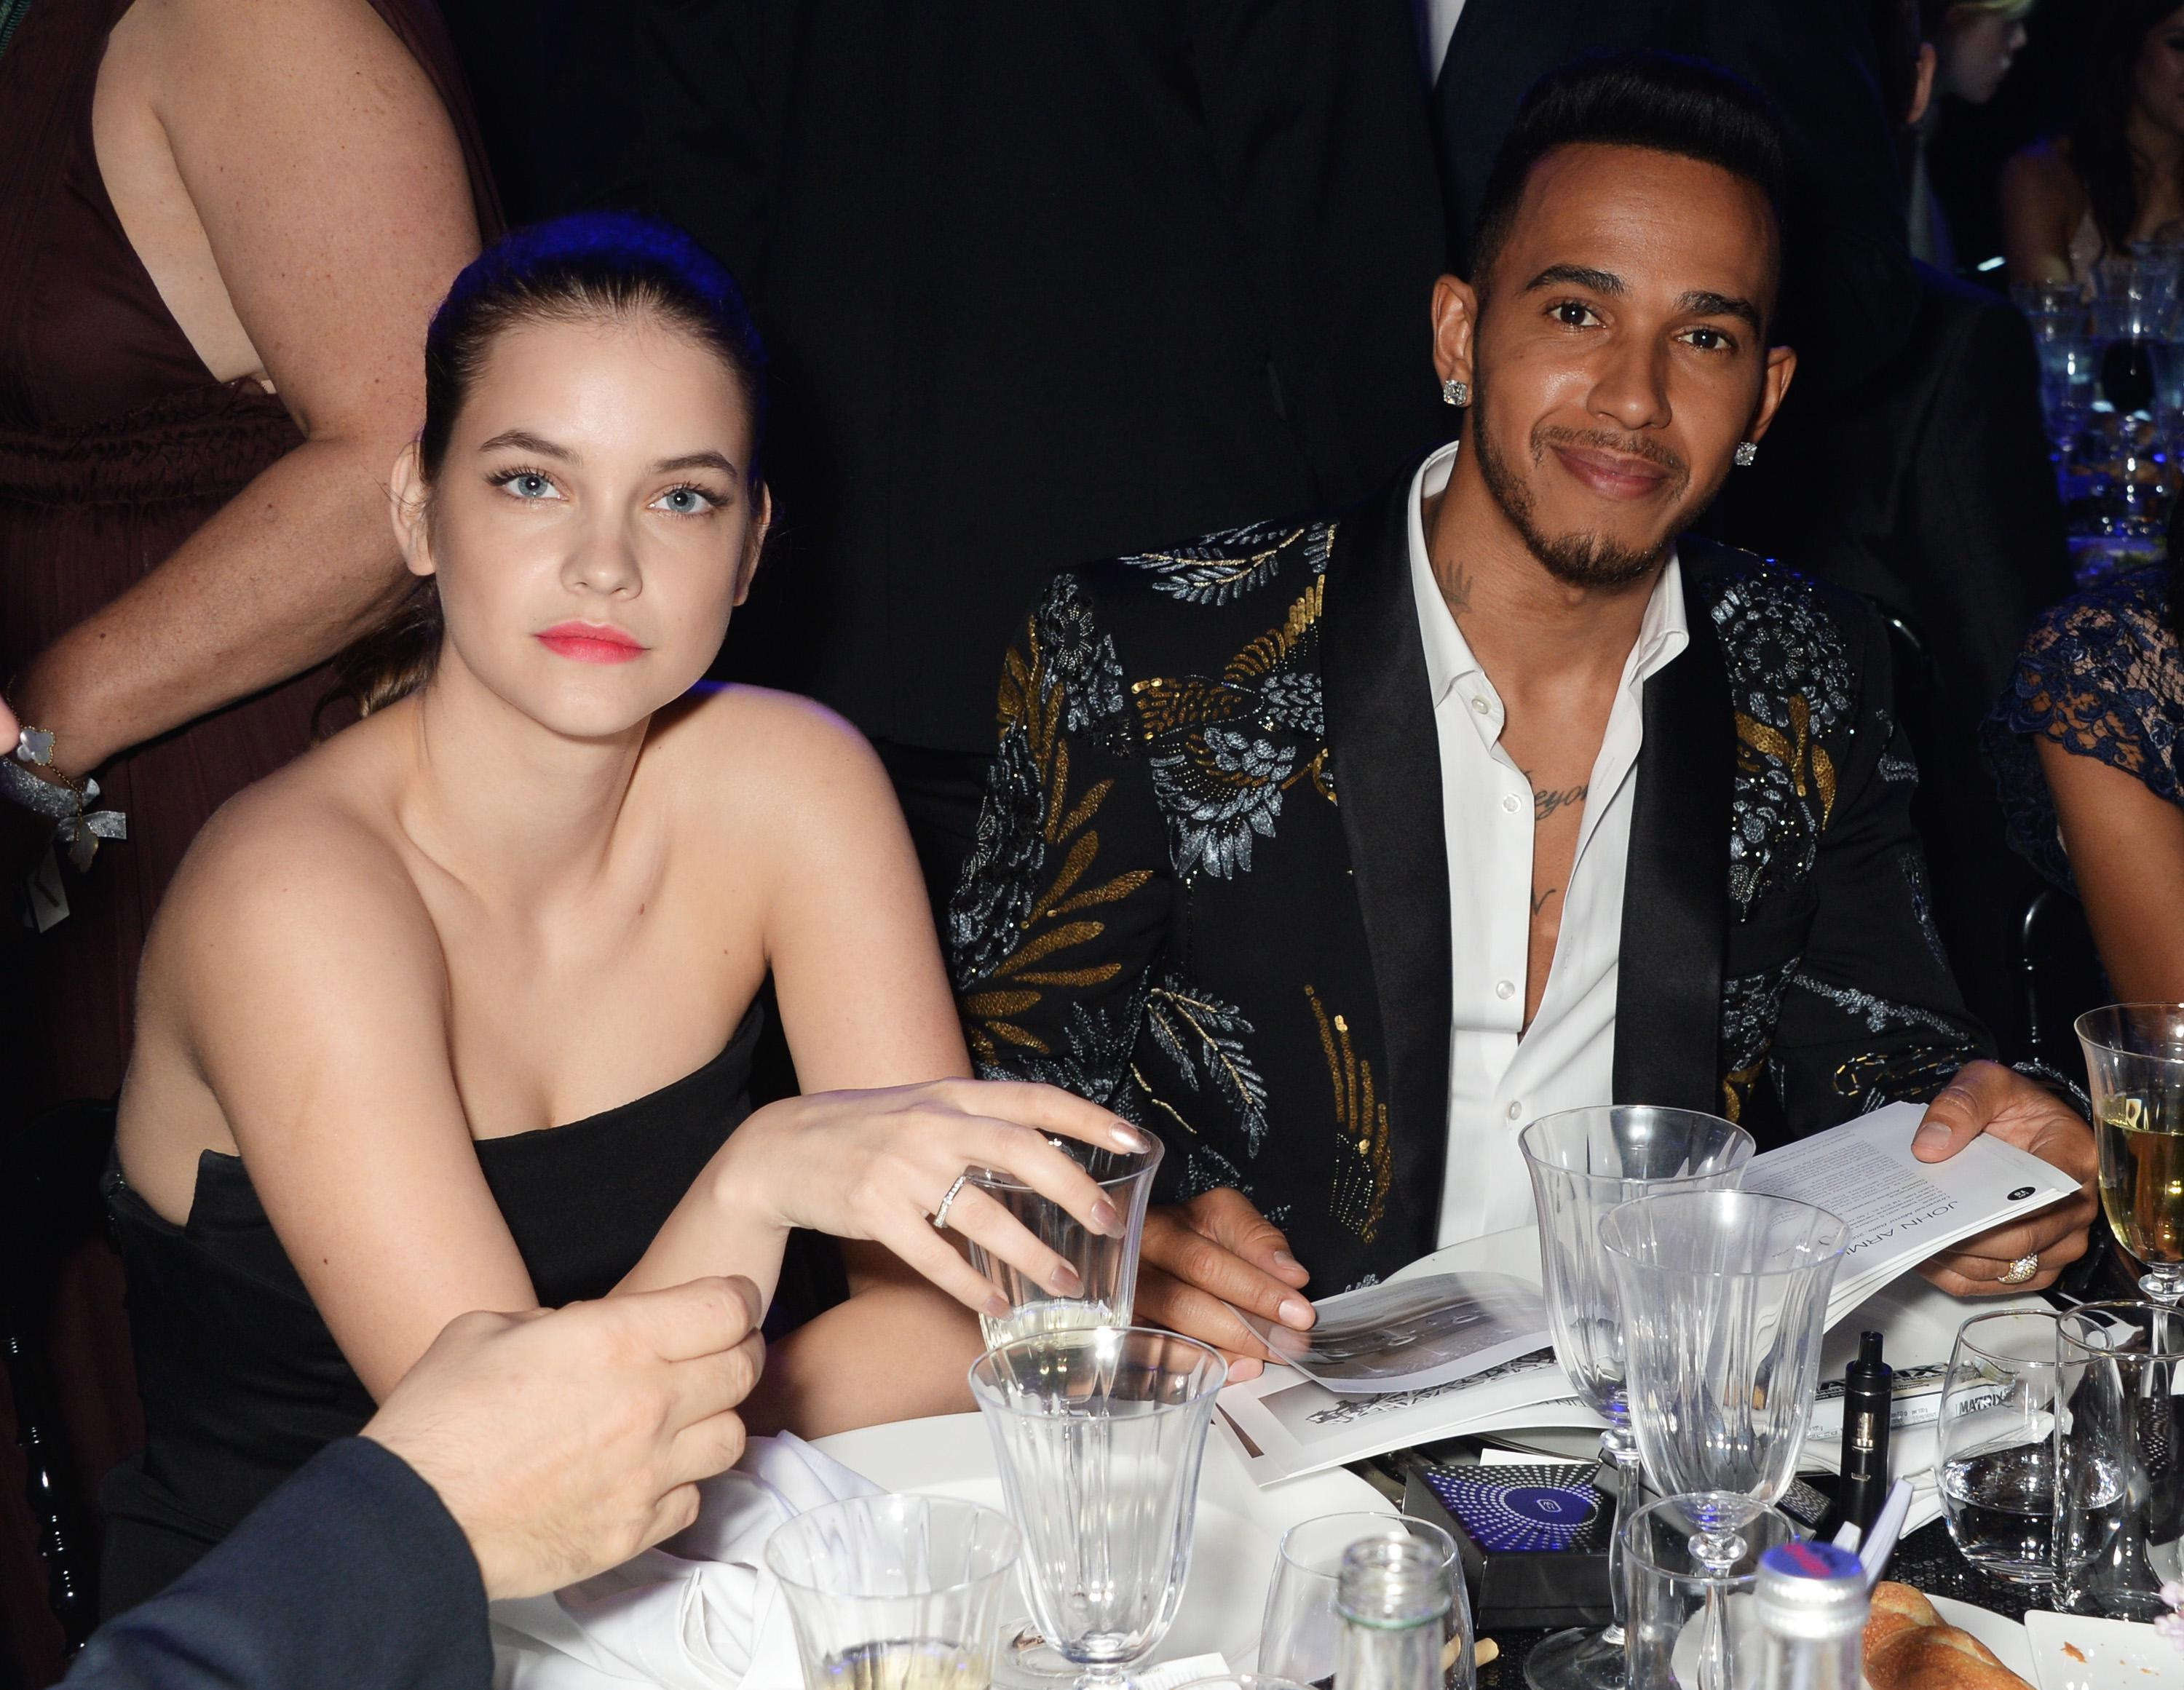 Barbara Palvin was also rumoured to be dating Lewis in 2016